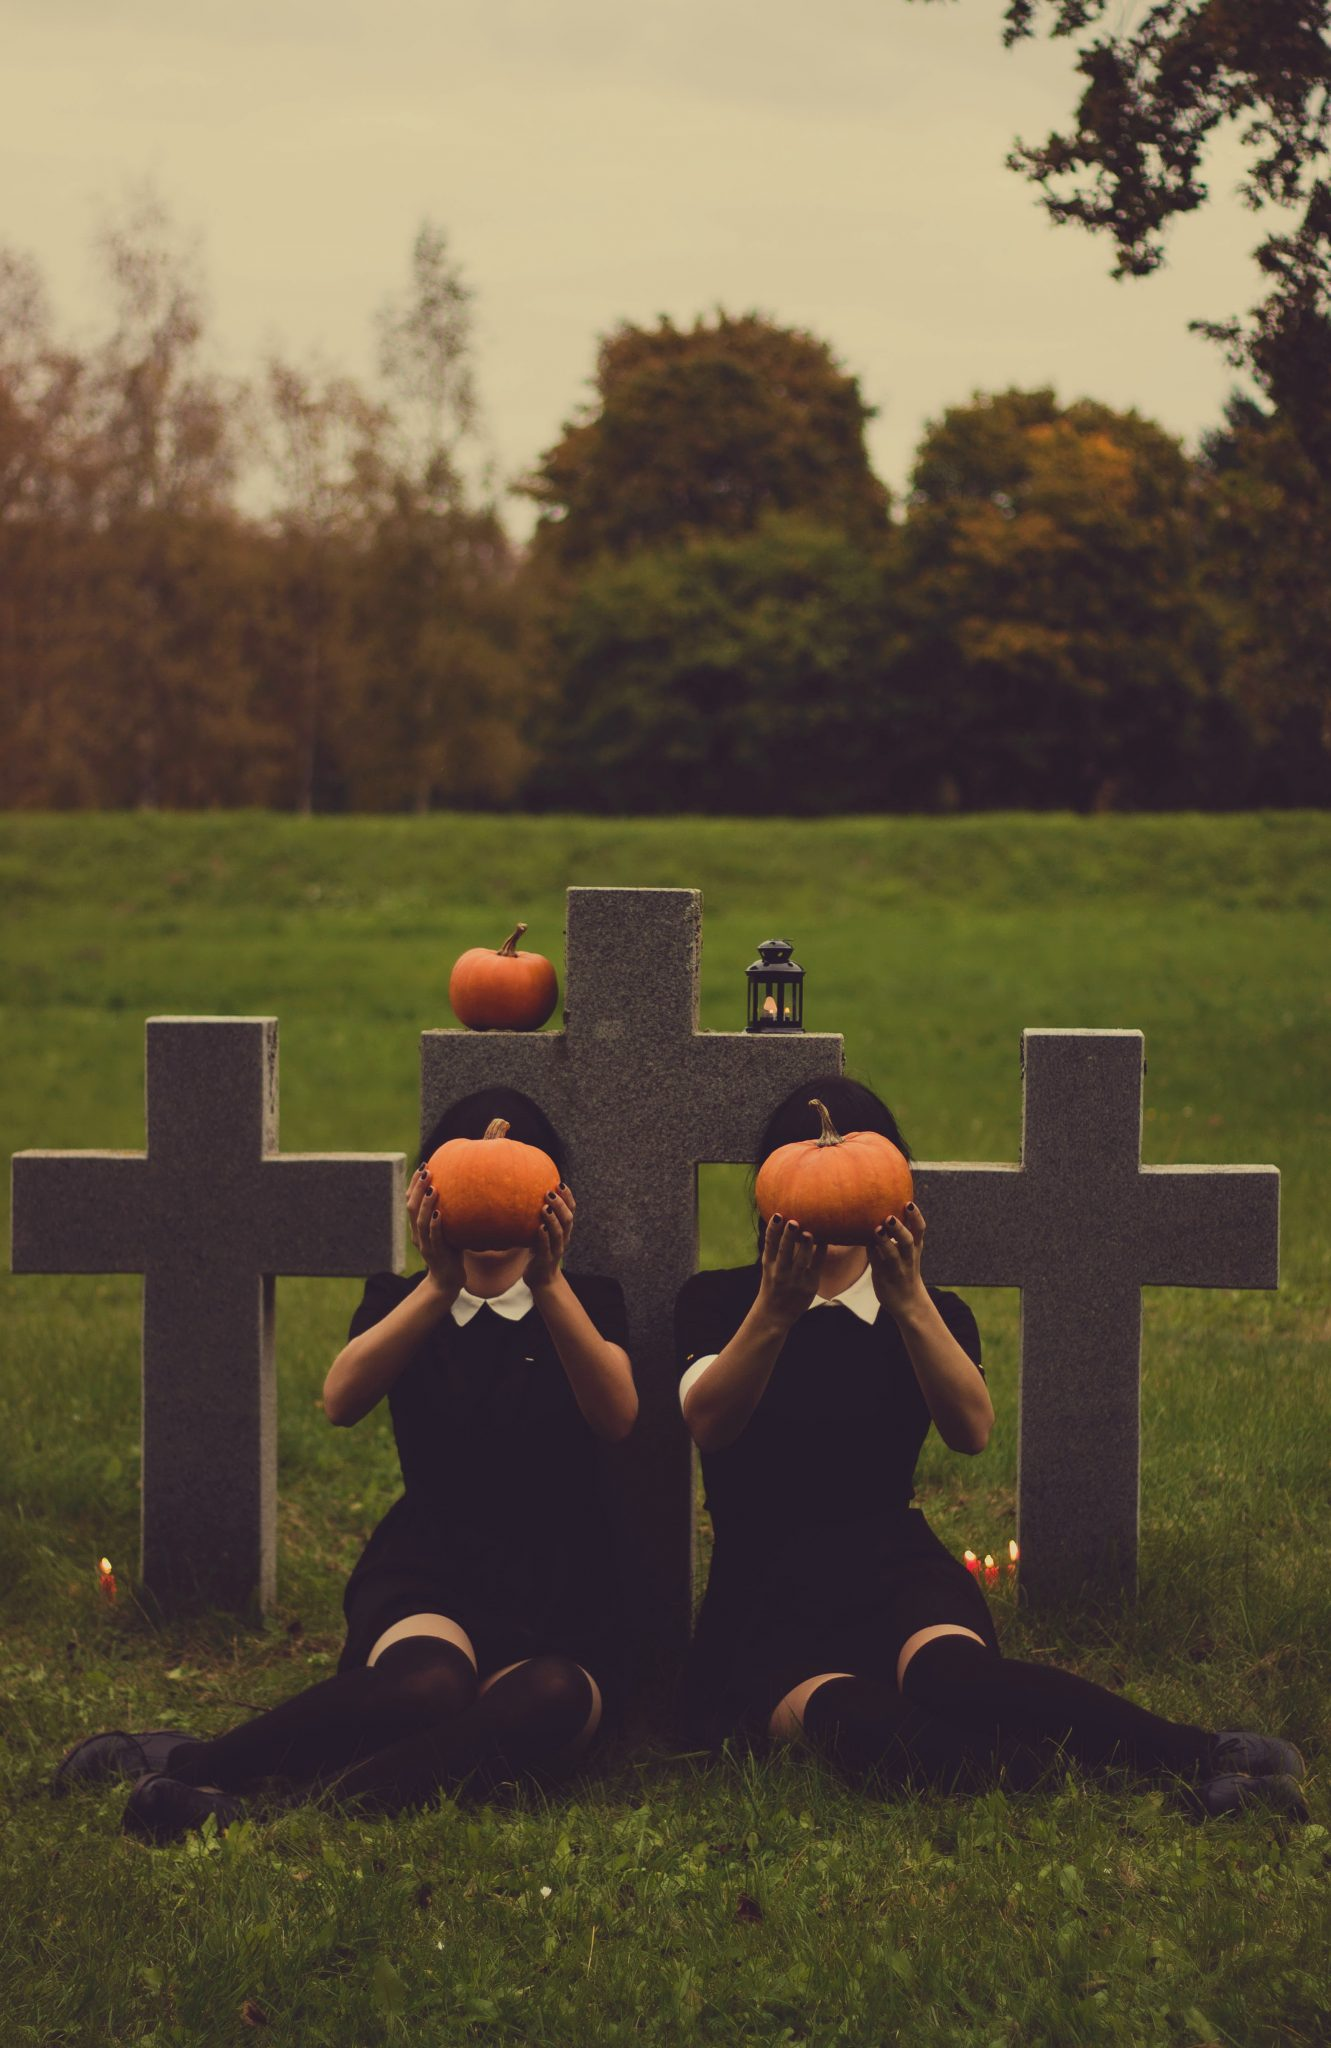 Halloween and All Saints Day